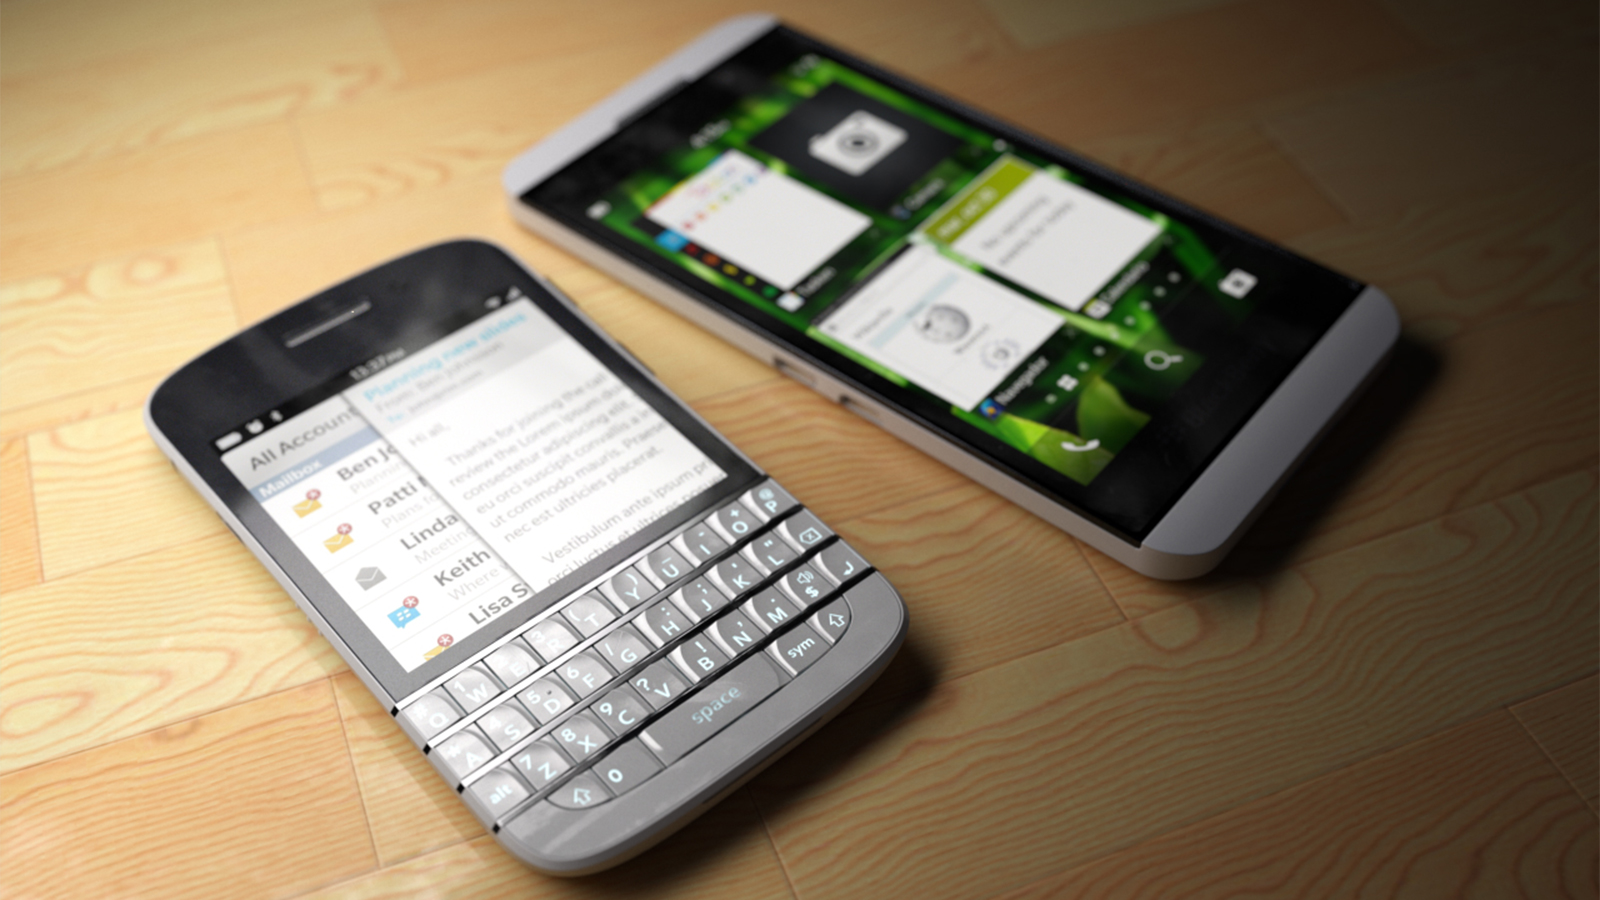 How to restore my data from blackberry protect